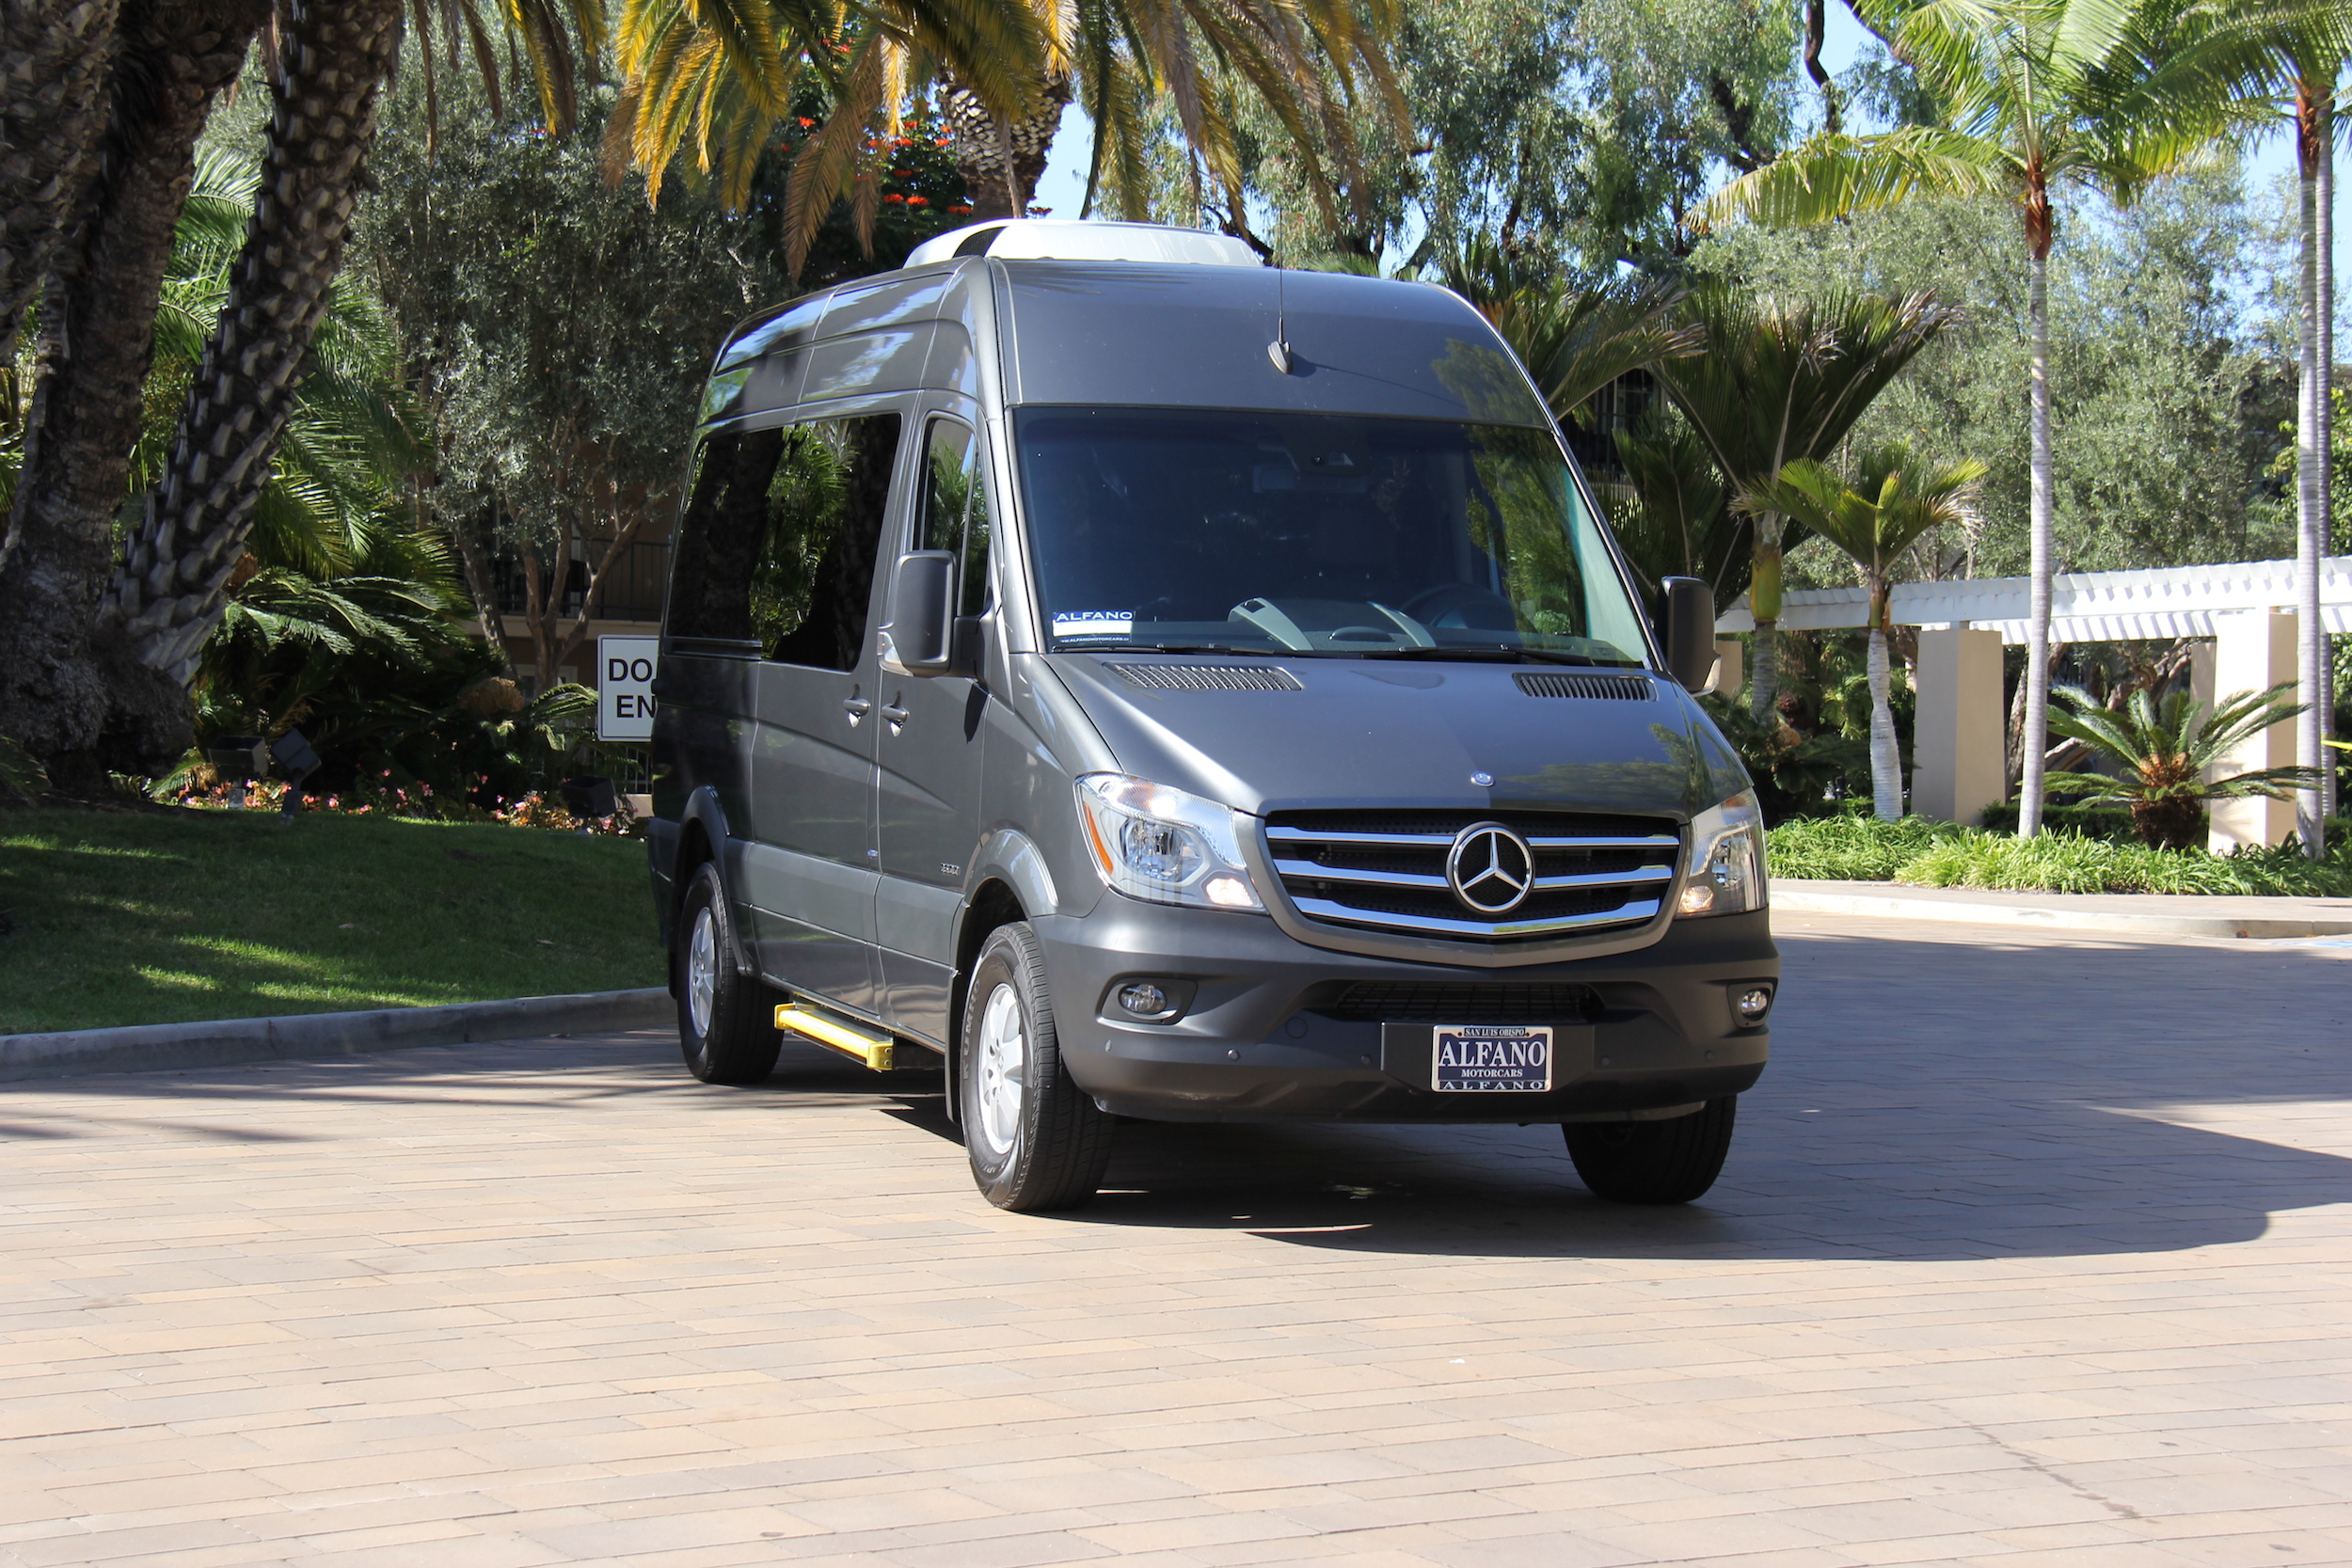 Mercedes Sprinter Orange County Van Rental